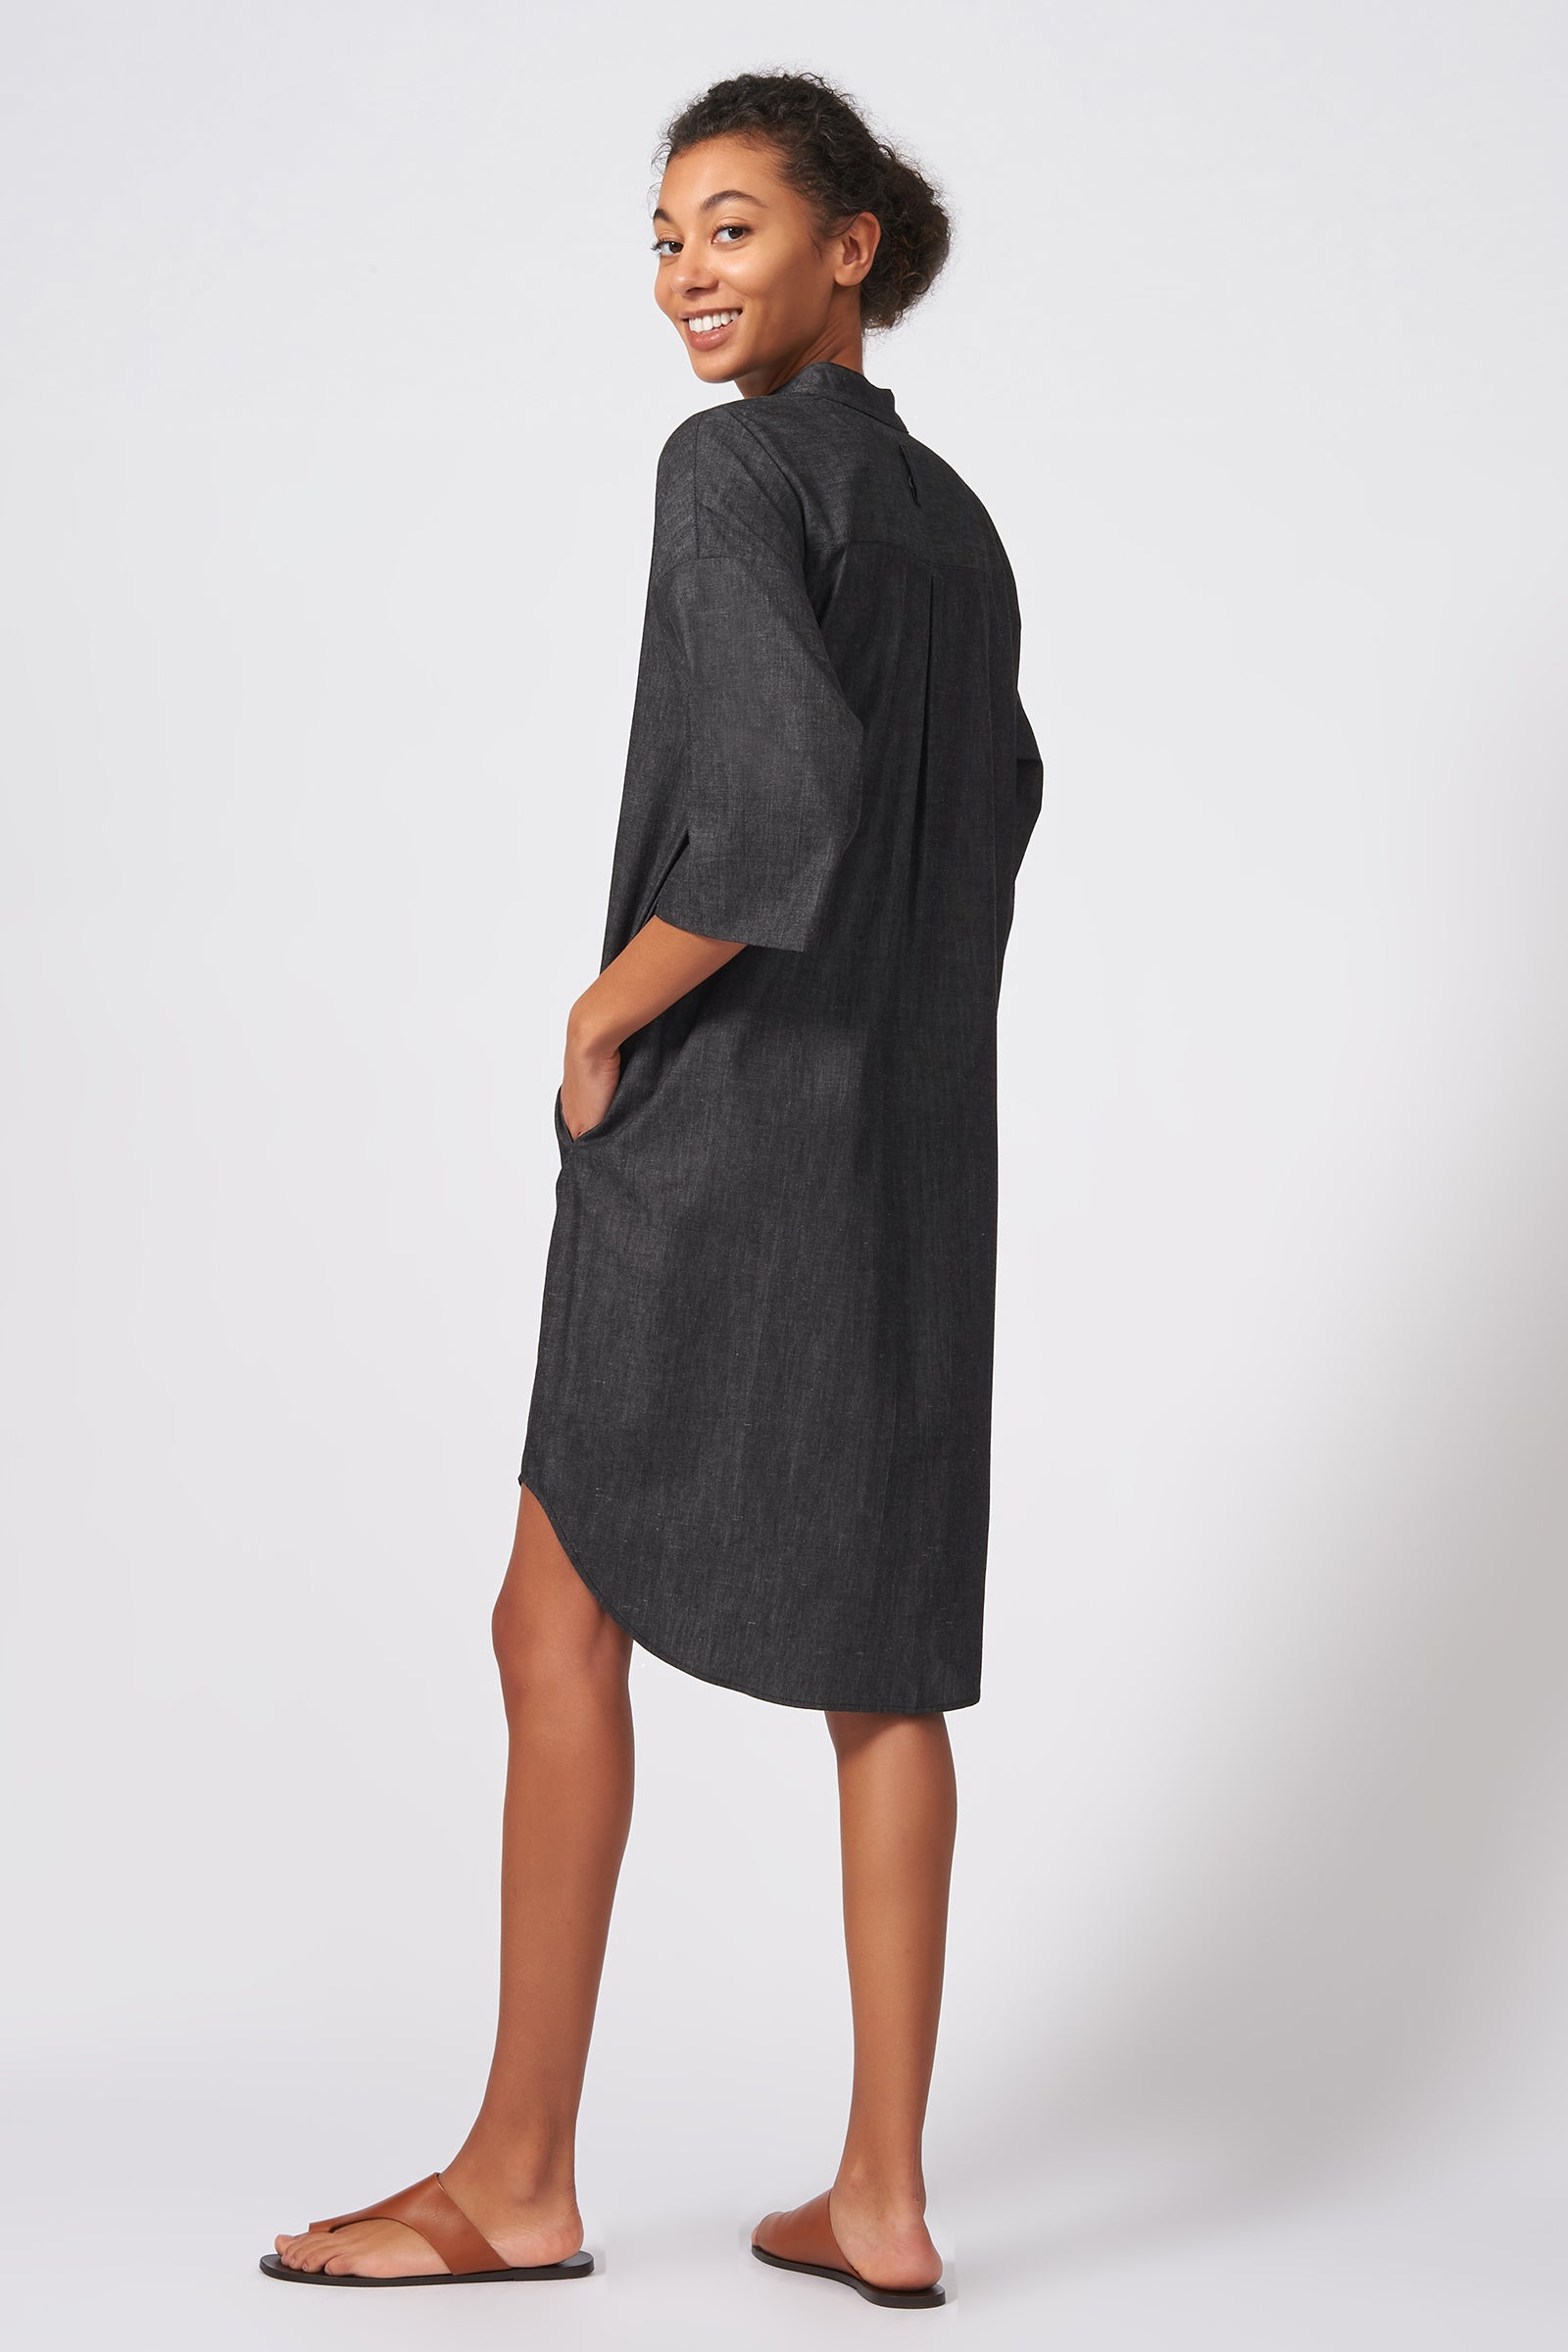 Kal Rieman Drop Sleeve Shirt Dress in Dark Denim on Model Side View